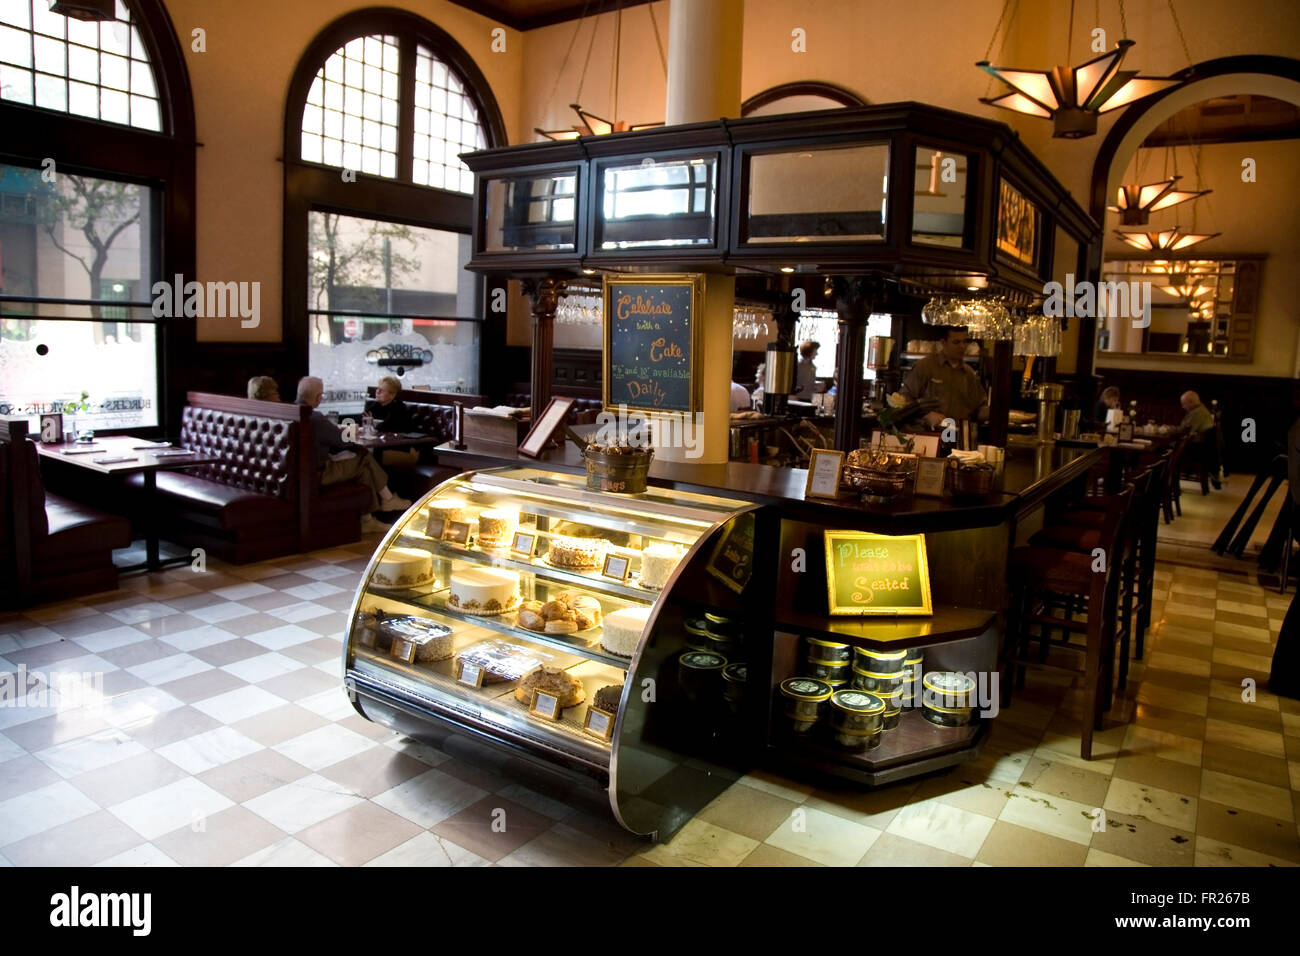 The Vintage Coffee Shop At The 1886 Driskill Hotel In Austin Texas Stock Photo 100237743 Alamy